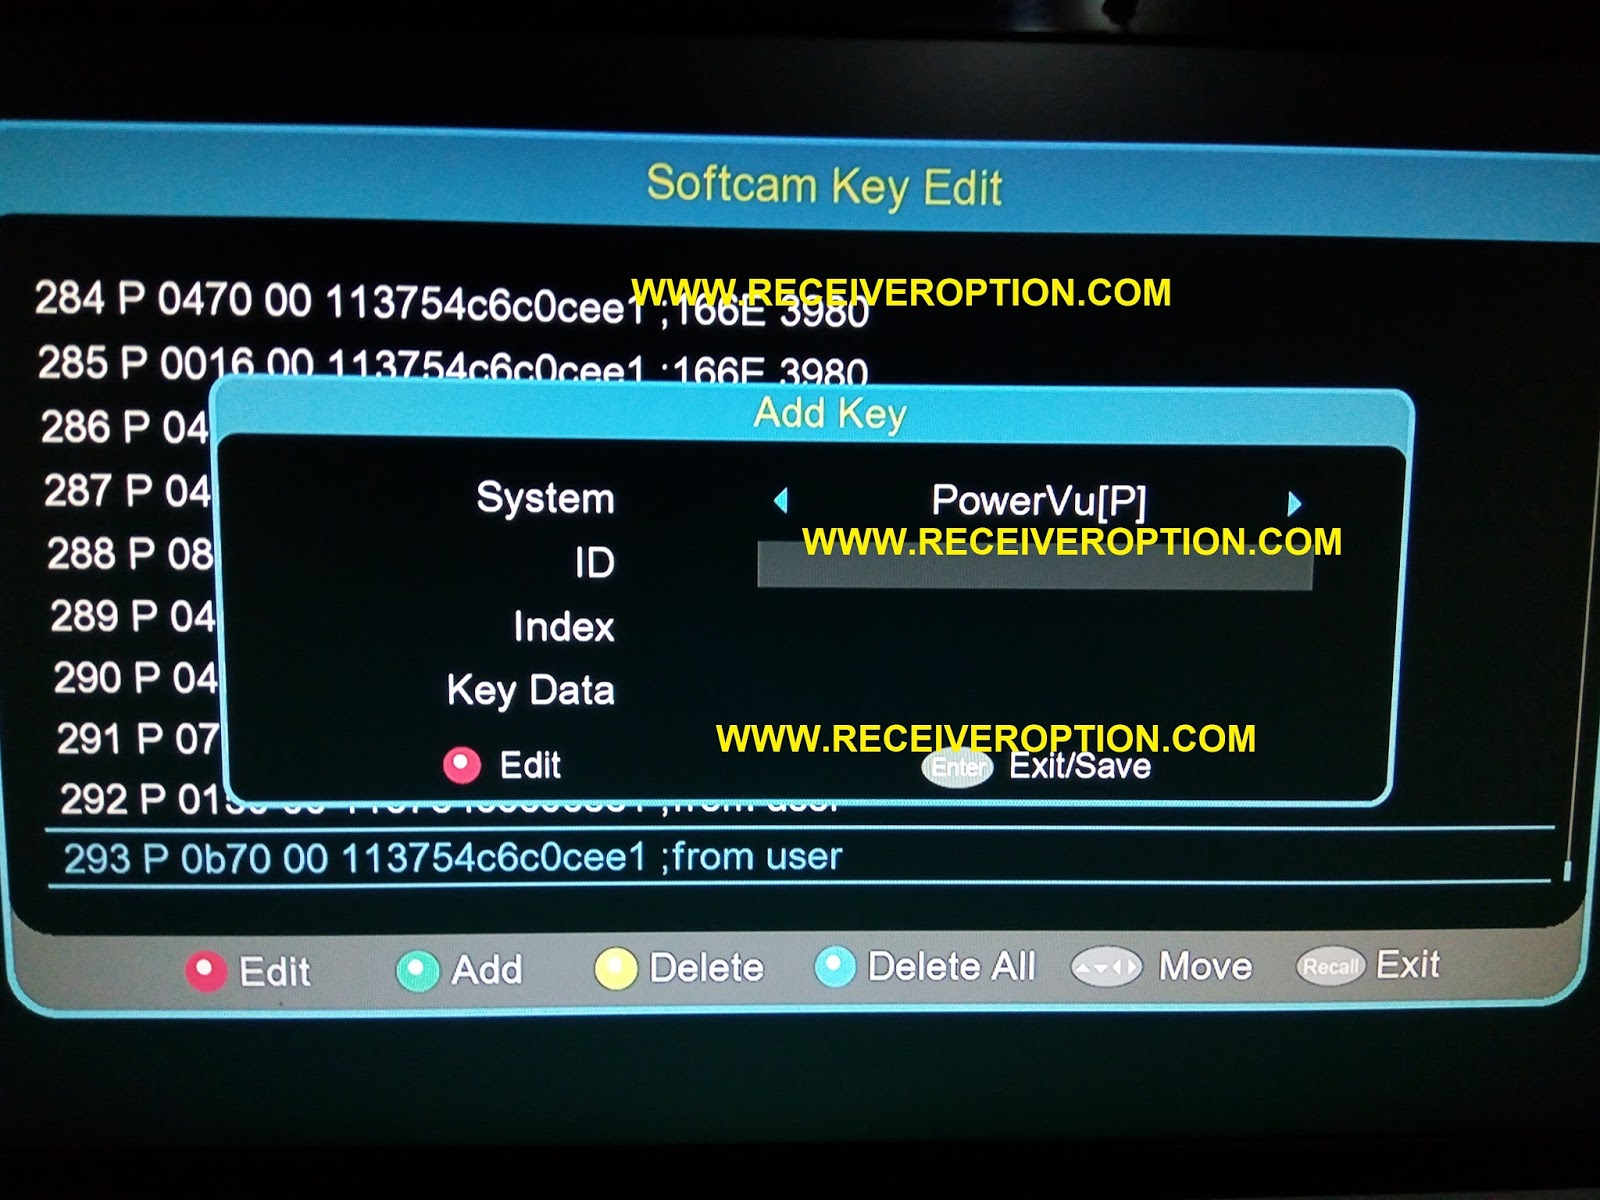 ECHOLINK 770D HD RECEIVER POWERVU KEY SOFTWARE - HOW TO